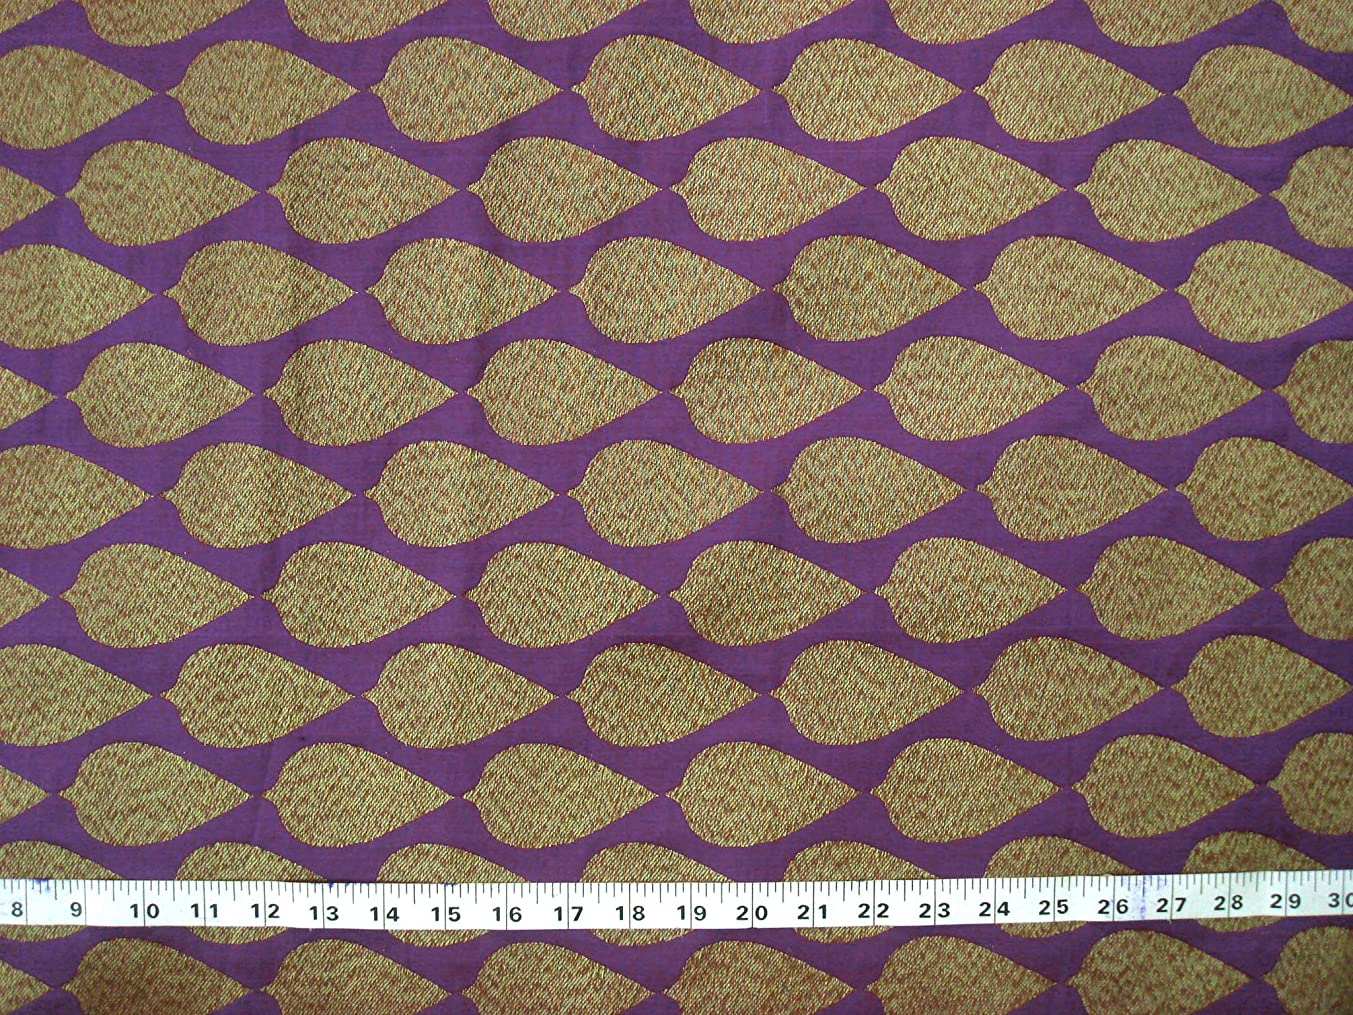 Purple Decorative Brocade Fabric by The Yard, 44 Inches Gold Leaf Motif Graced Indian Fabric Dress Making Fabric